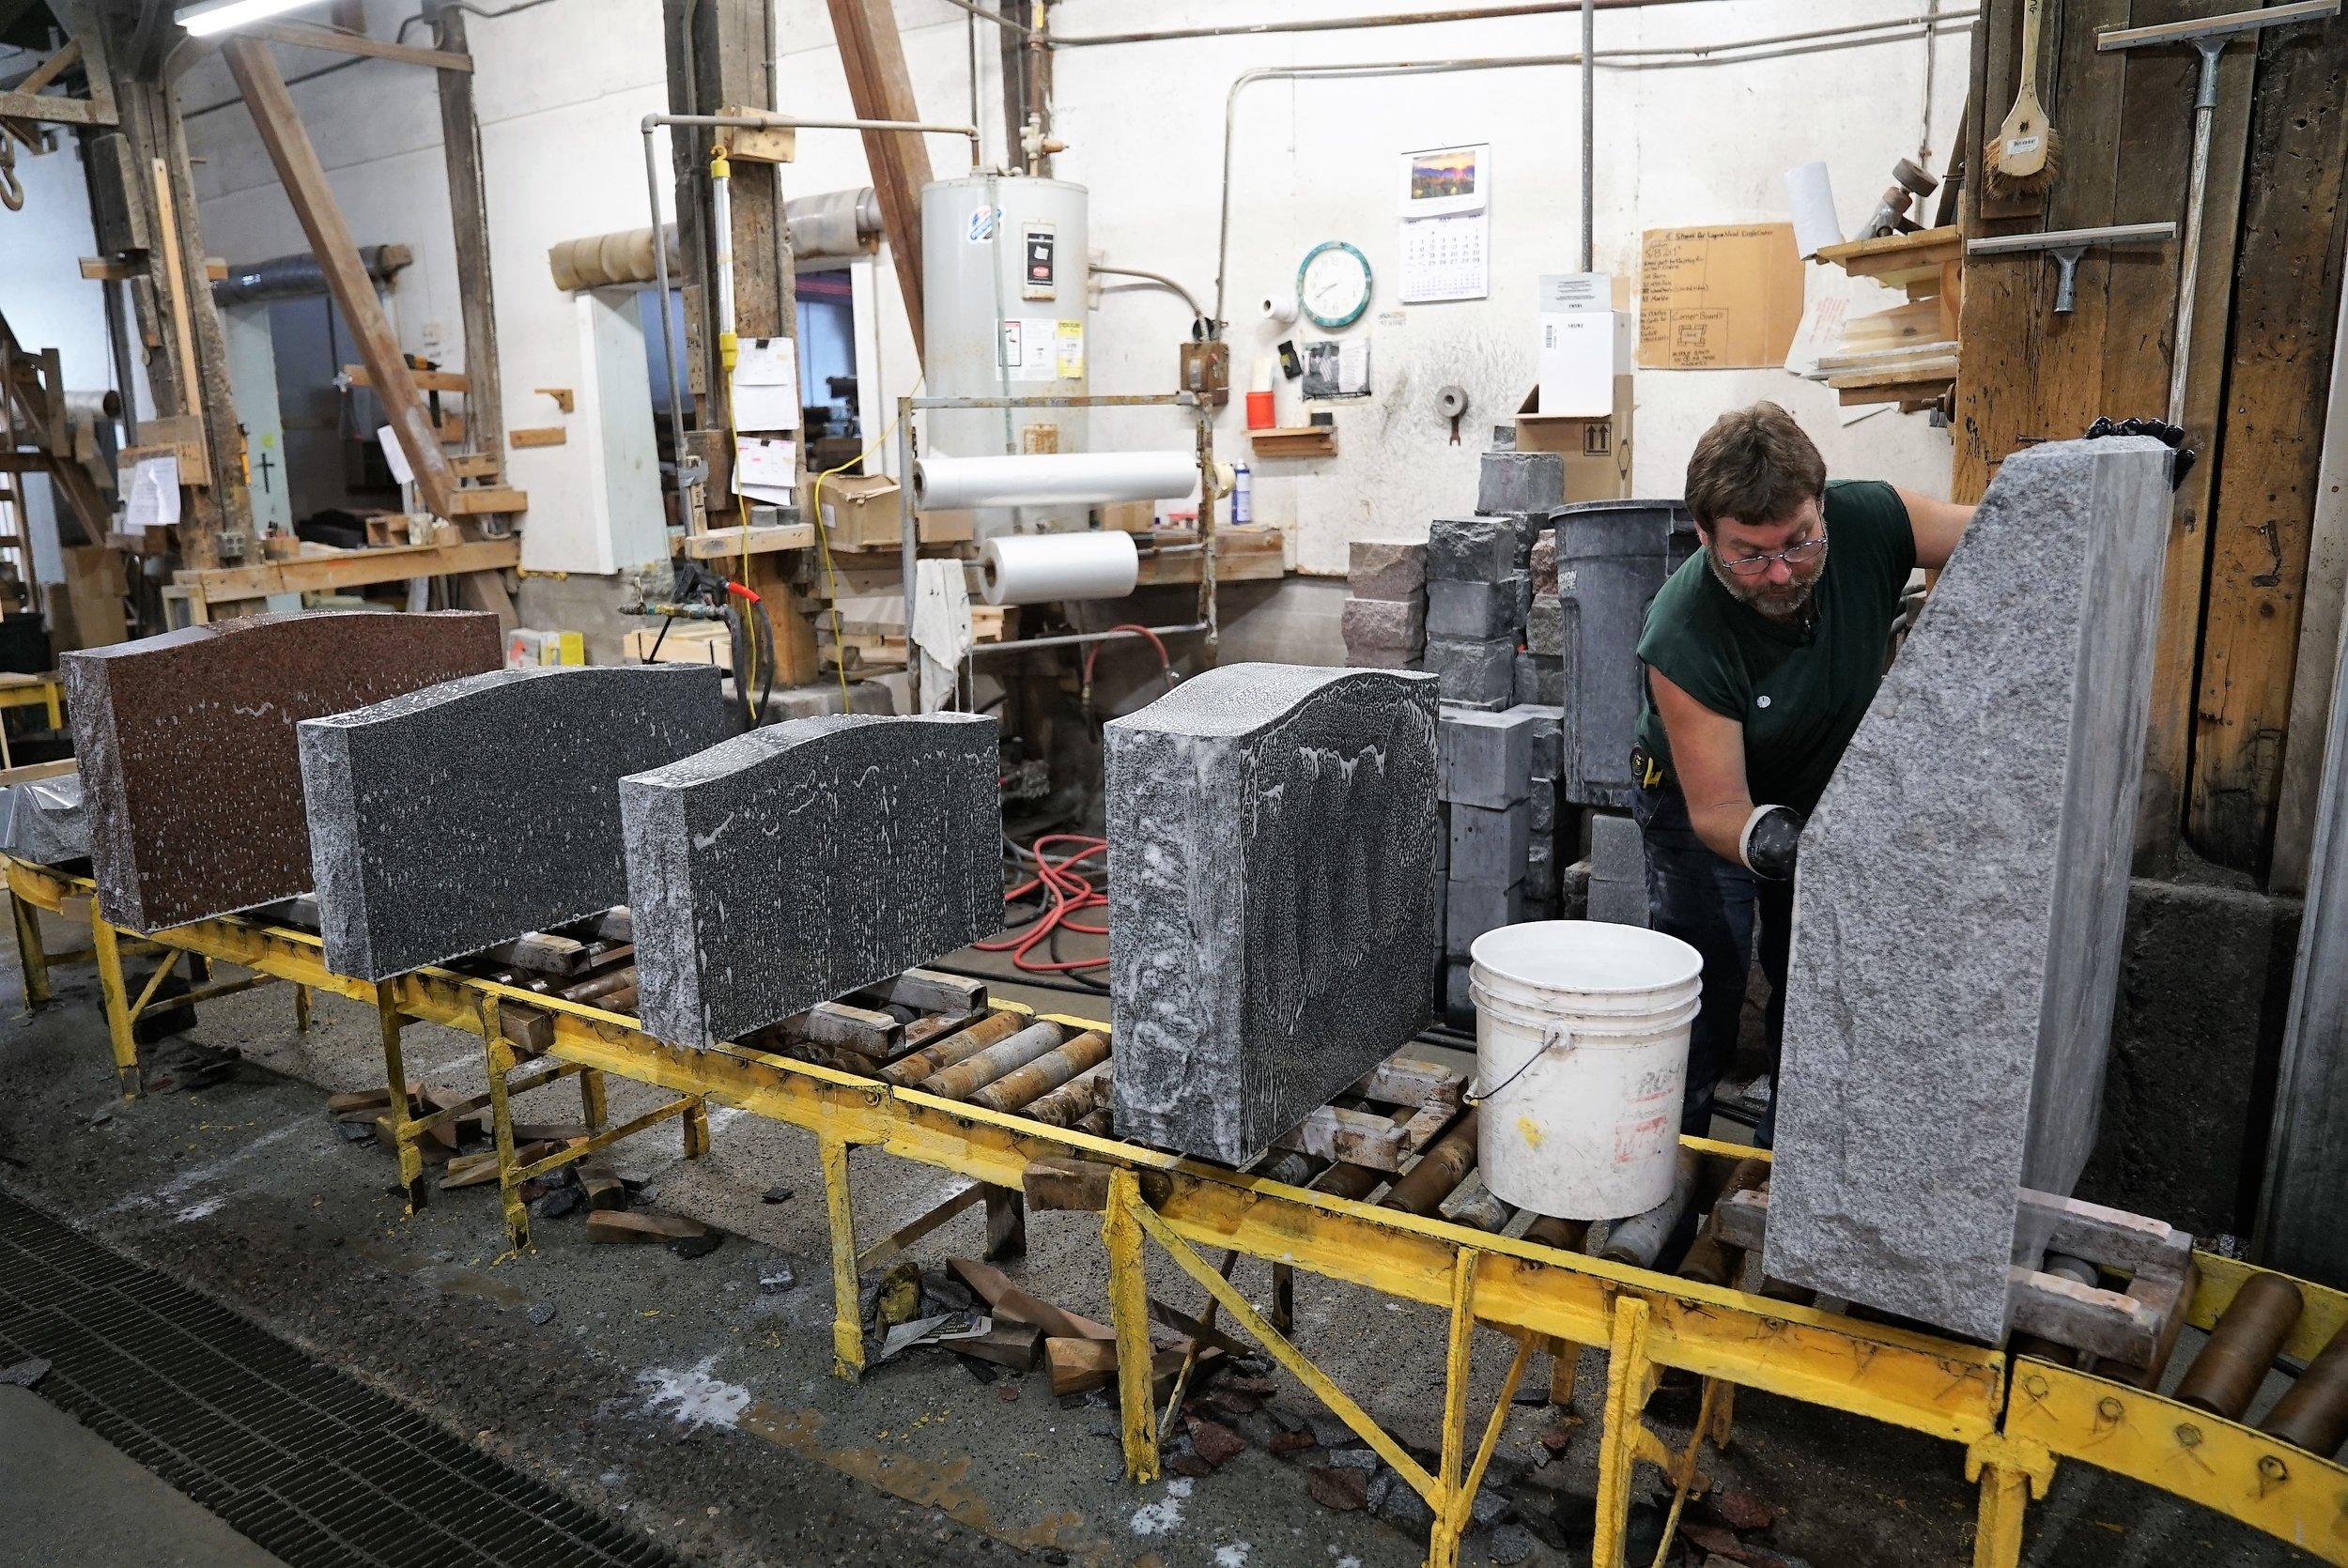 Stones are being washed and inspected.